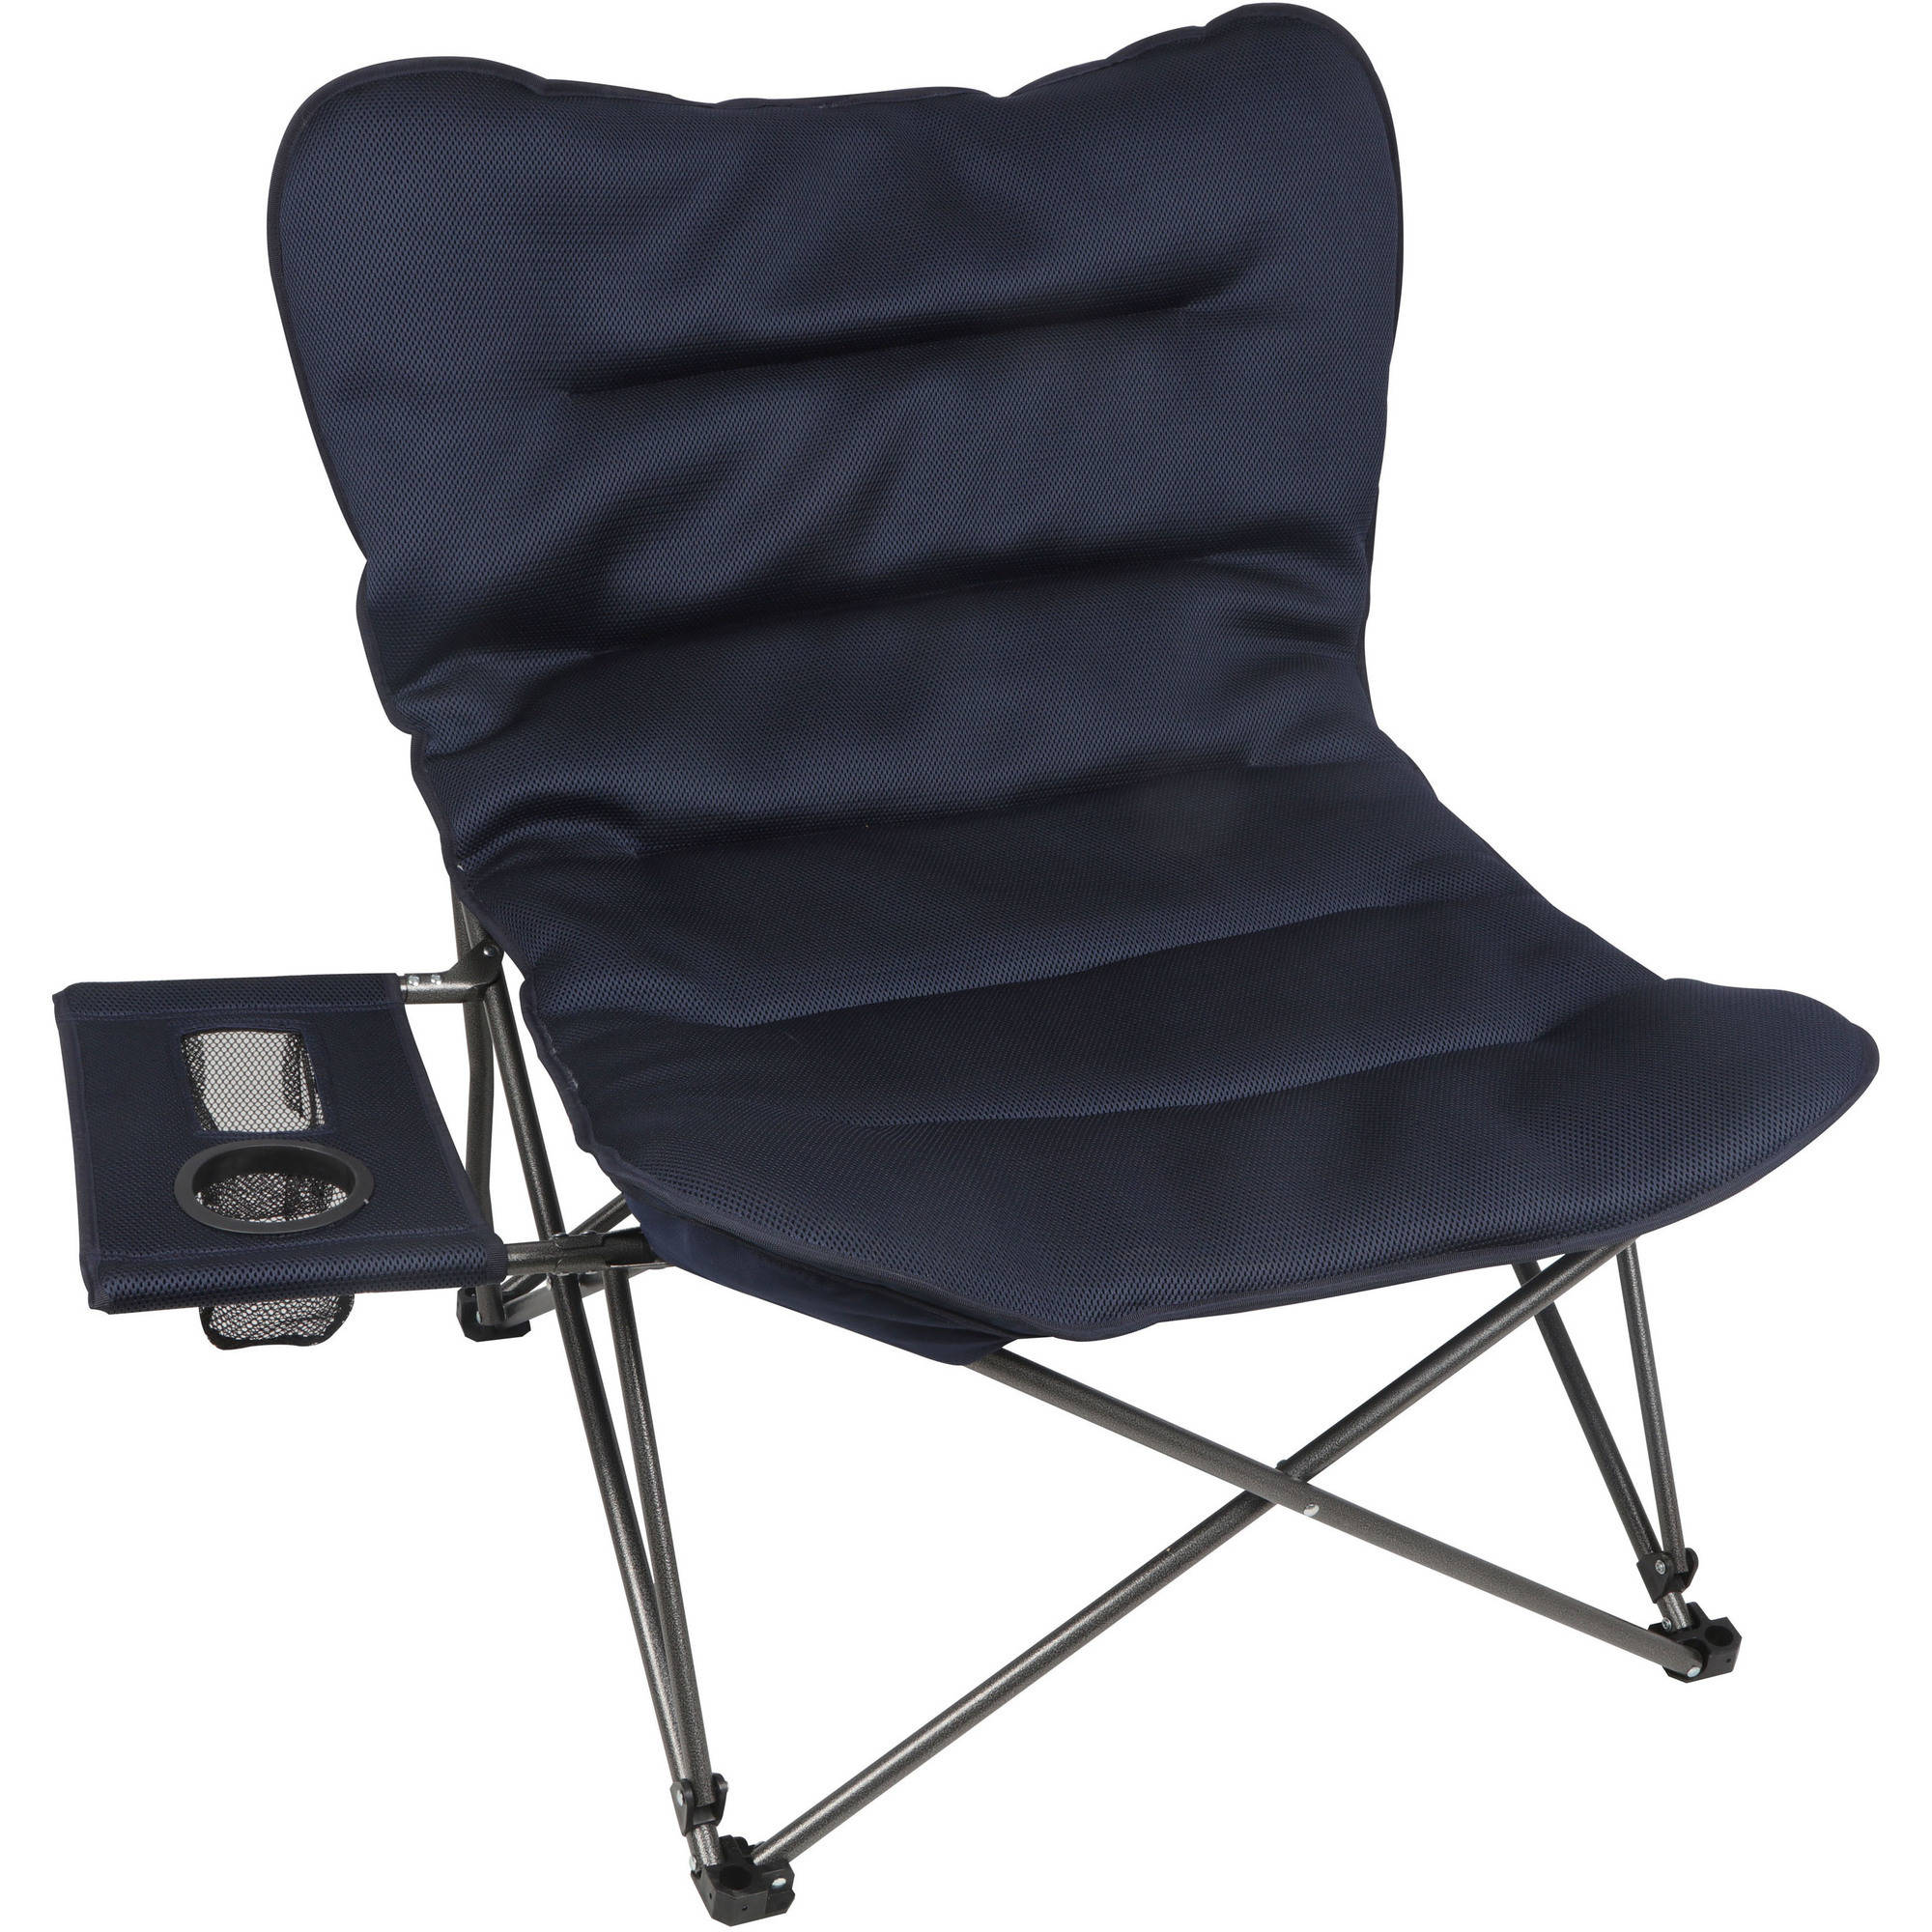 Ozark Trail Oversized Relax Plush Chair with Side Table, Blue